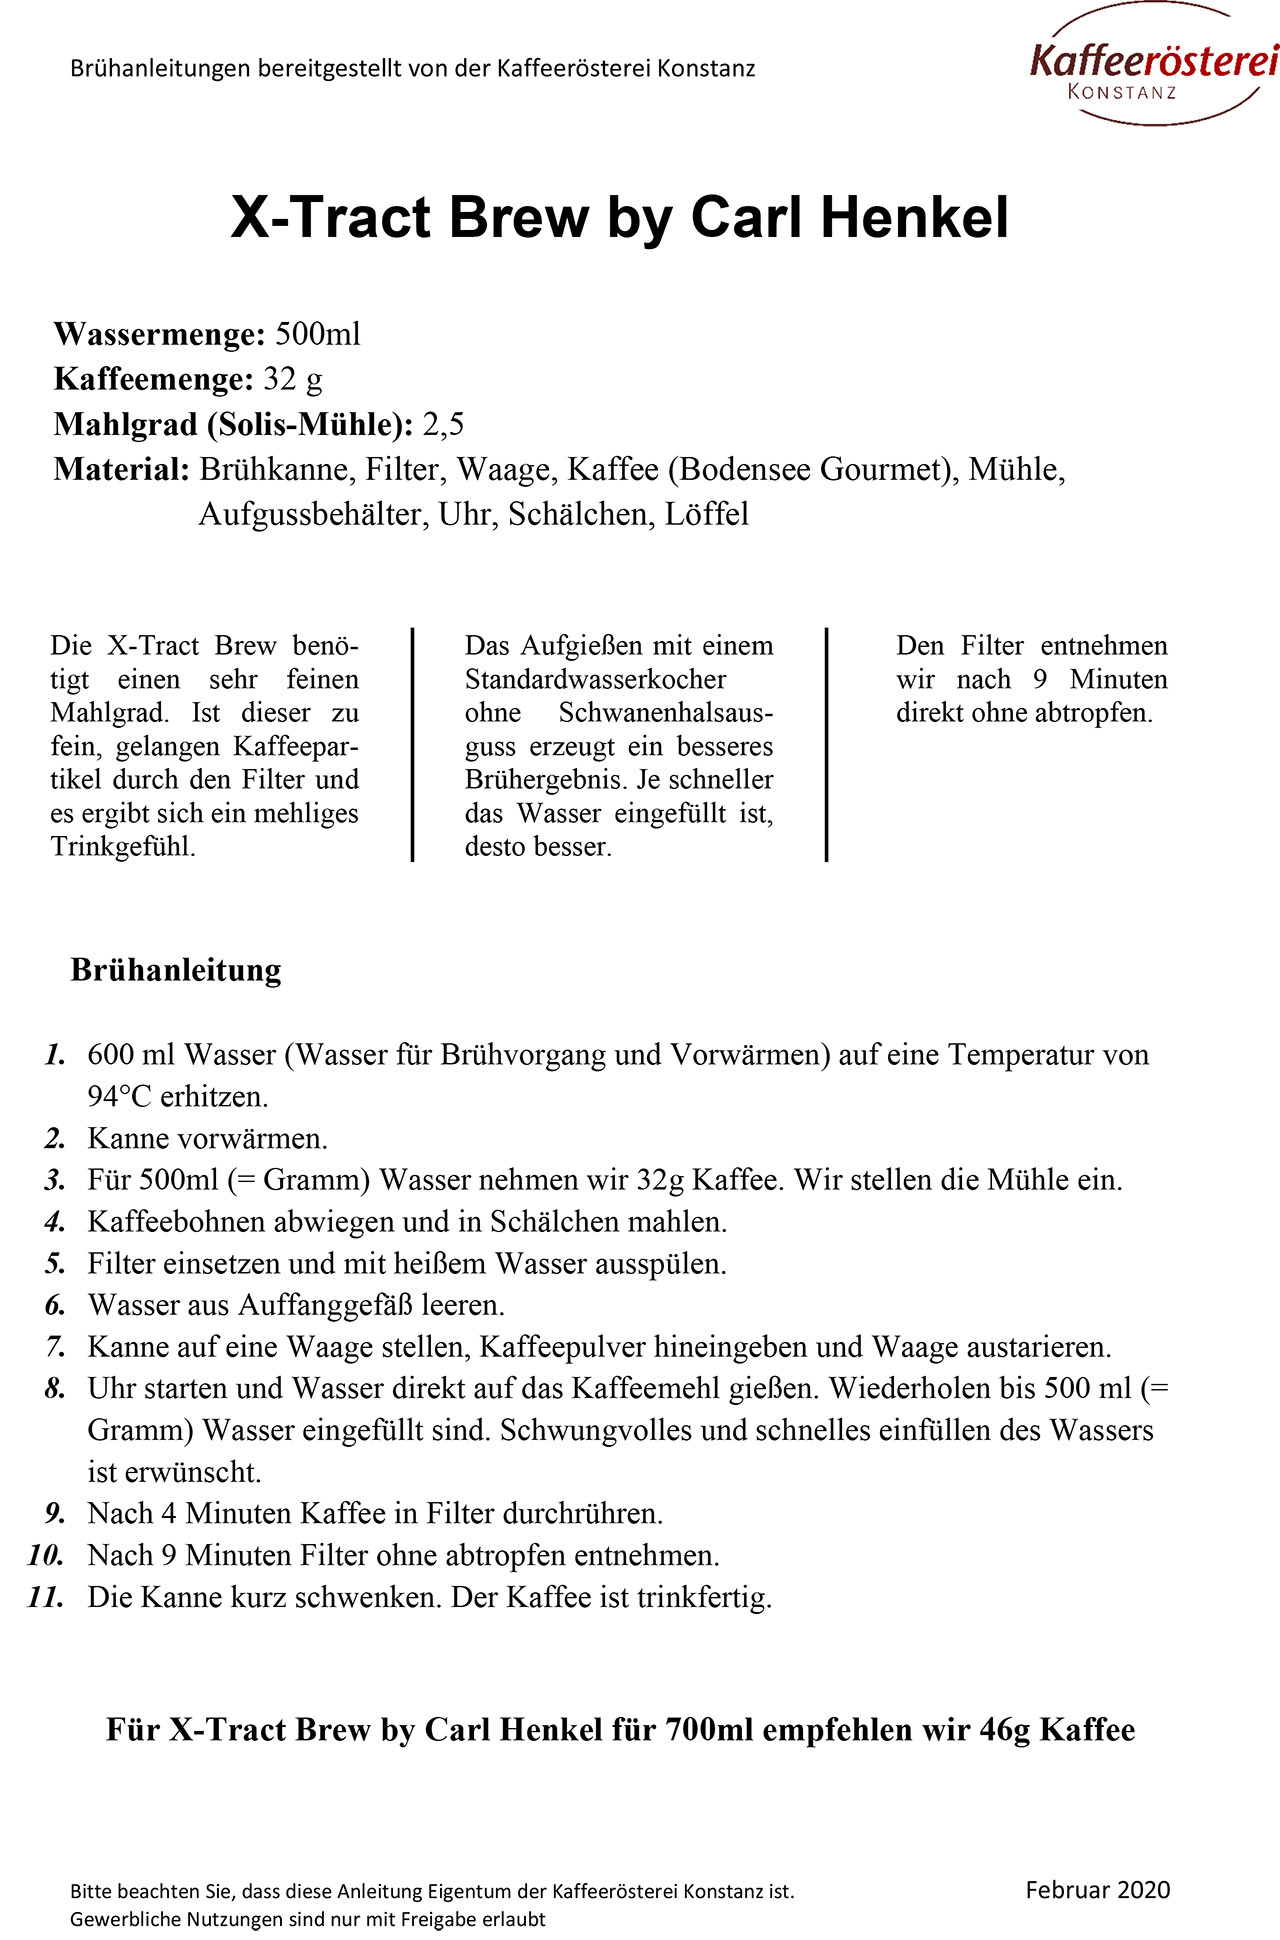 Brewguide Bodensee Kaffee